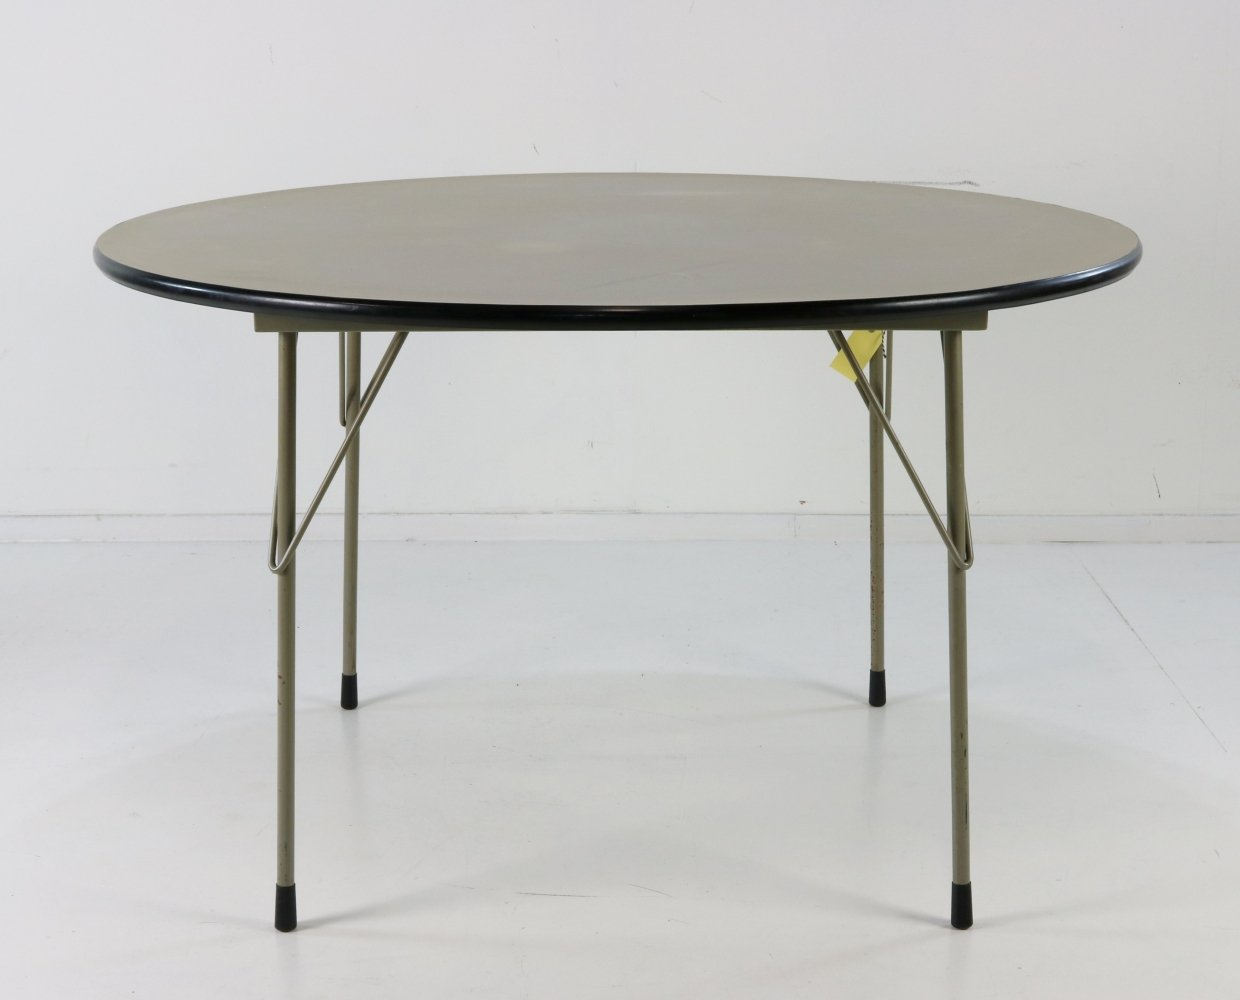 Round model 3711 dining table by Wim Rietveld for Gispen, 1959